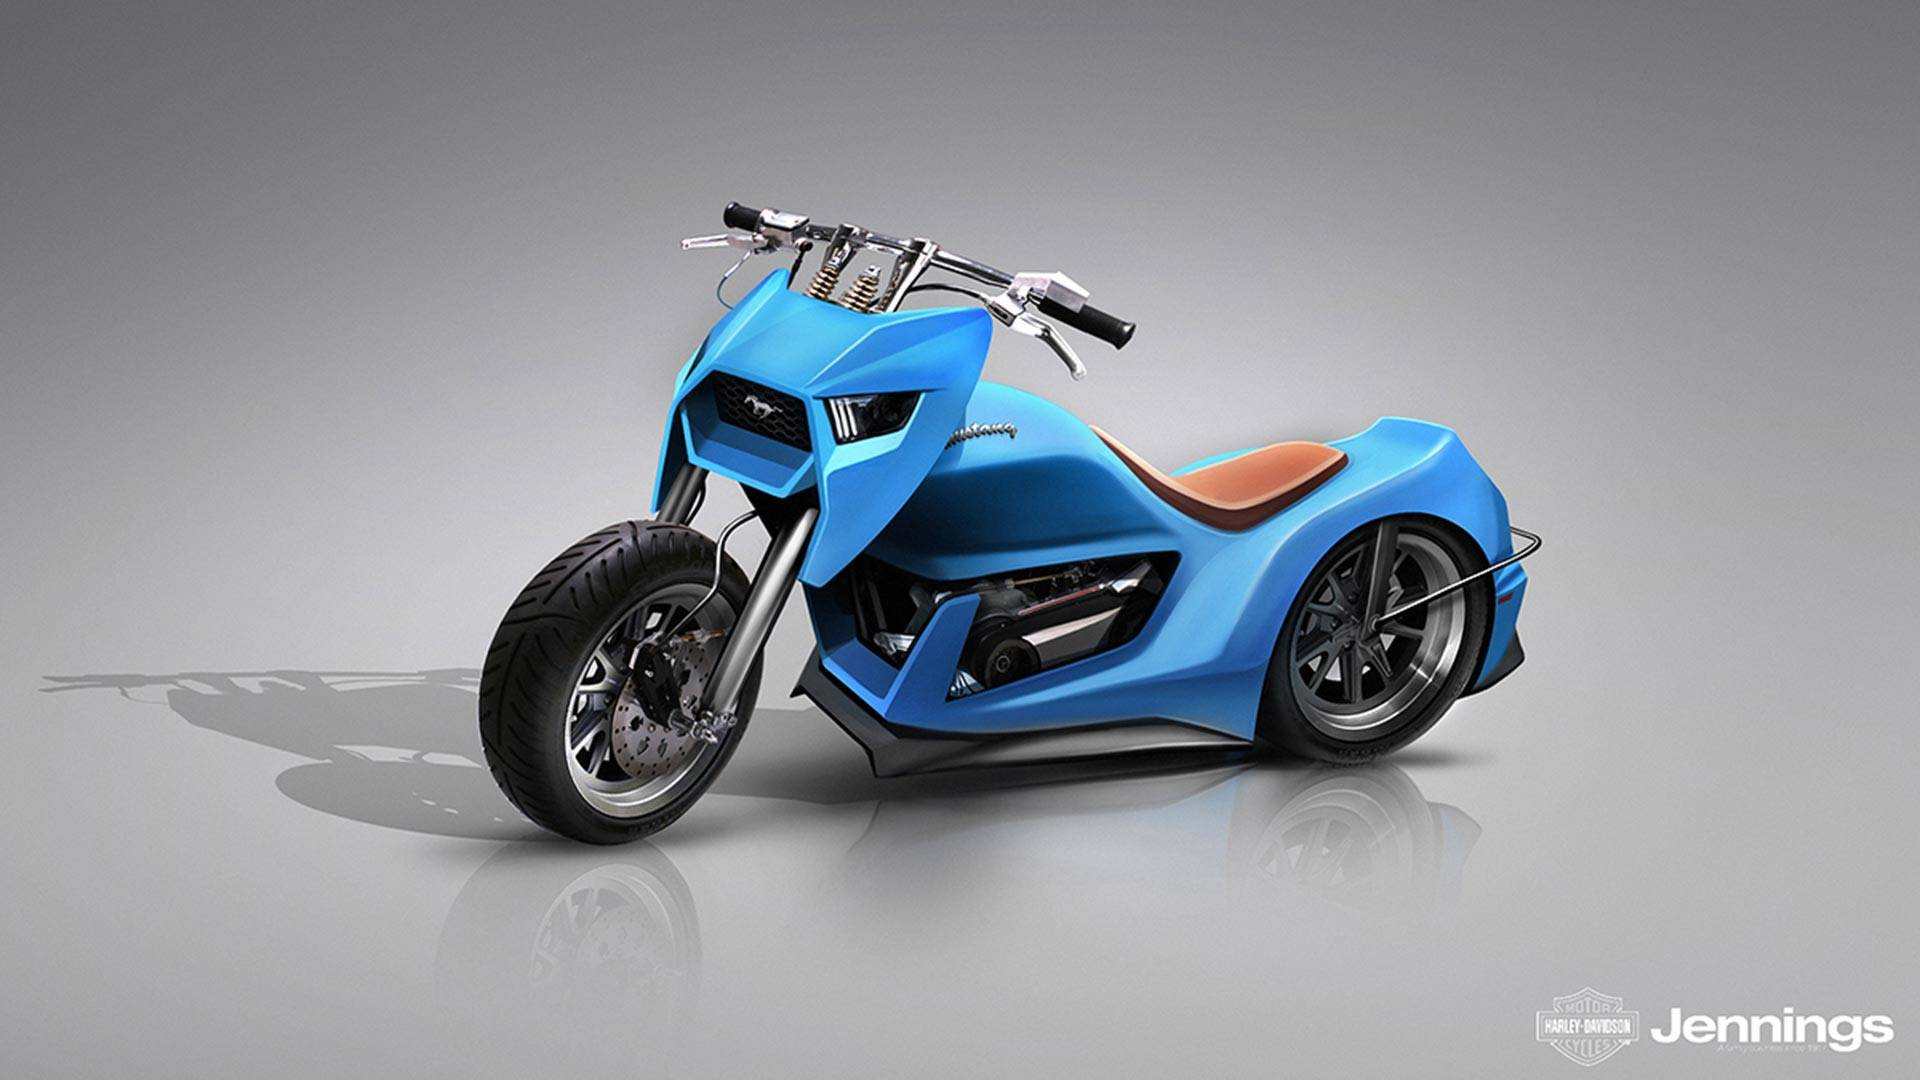 If automakers made motorcycles this is what theyd look like